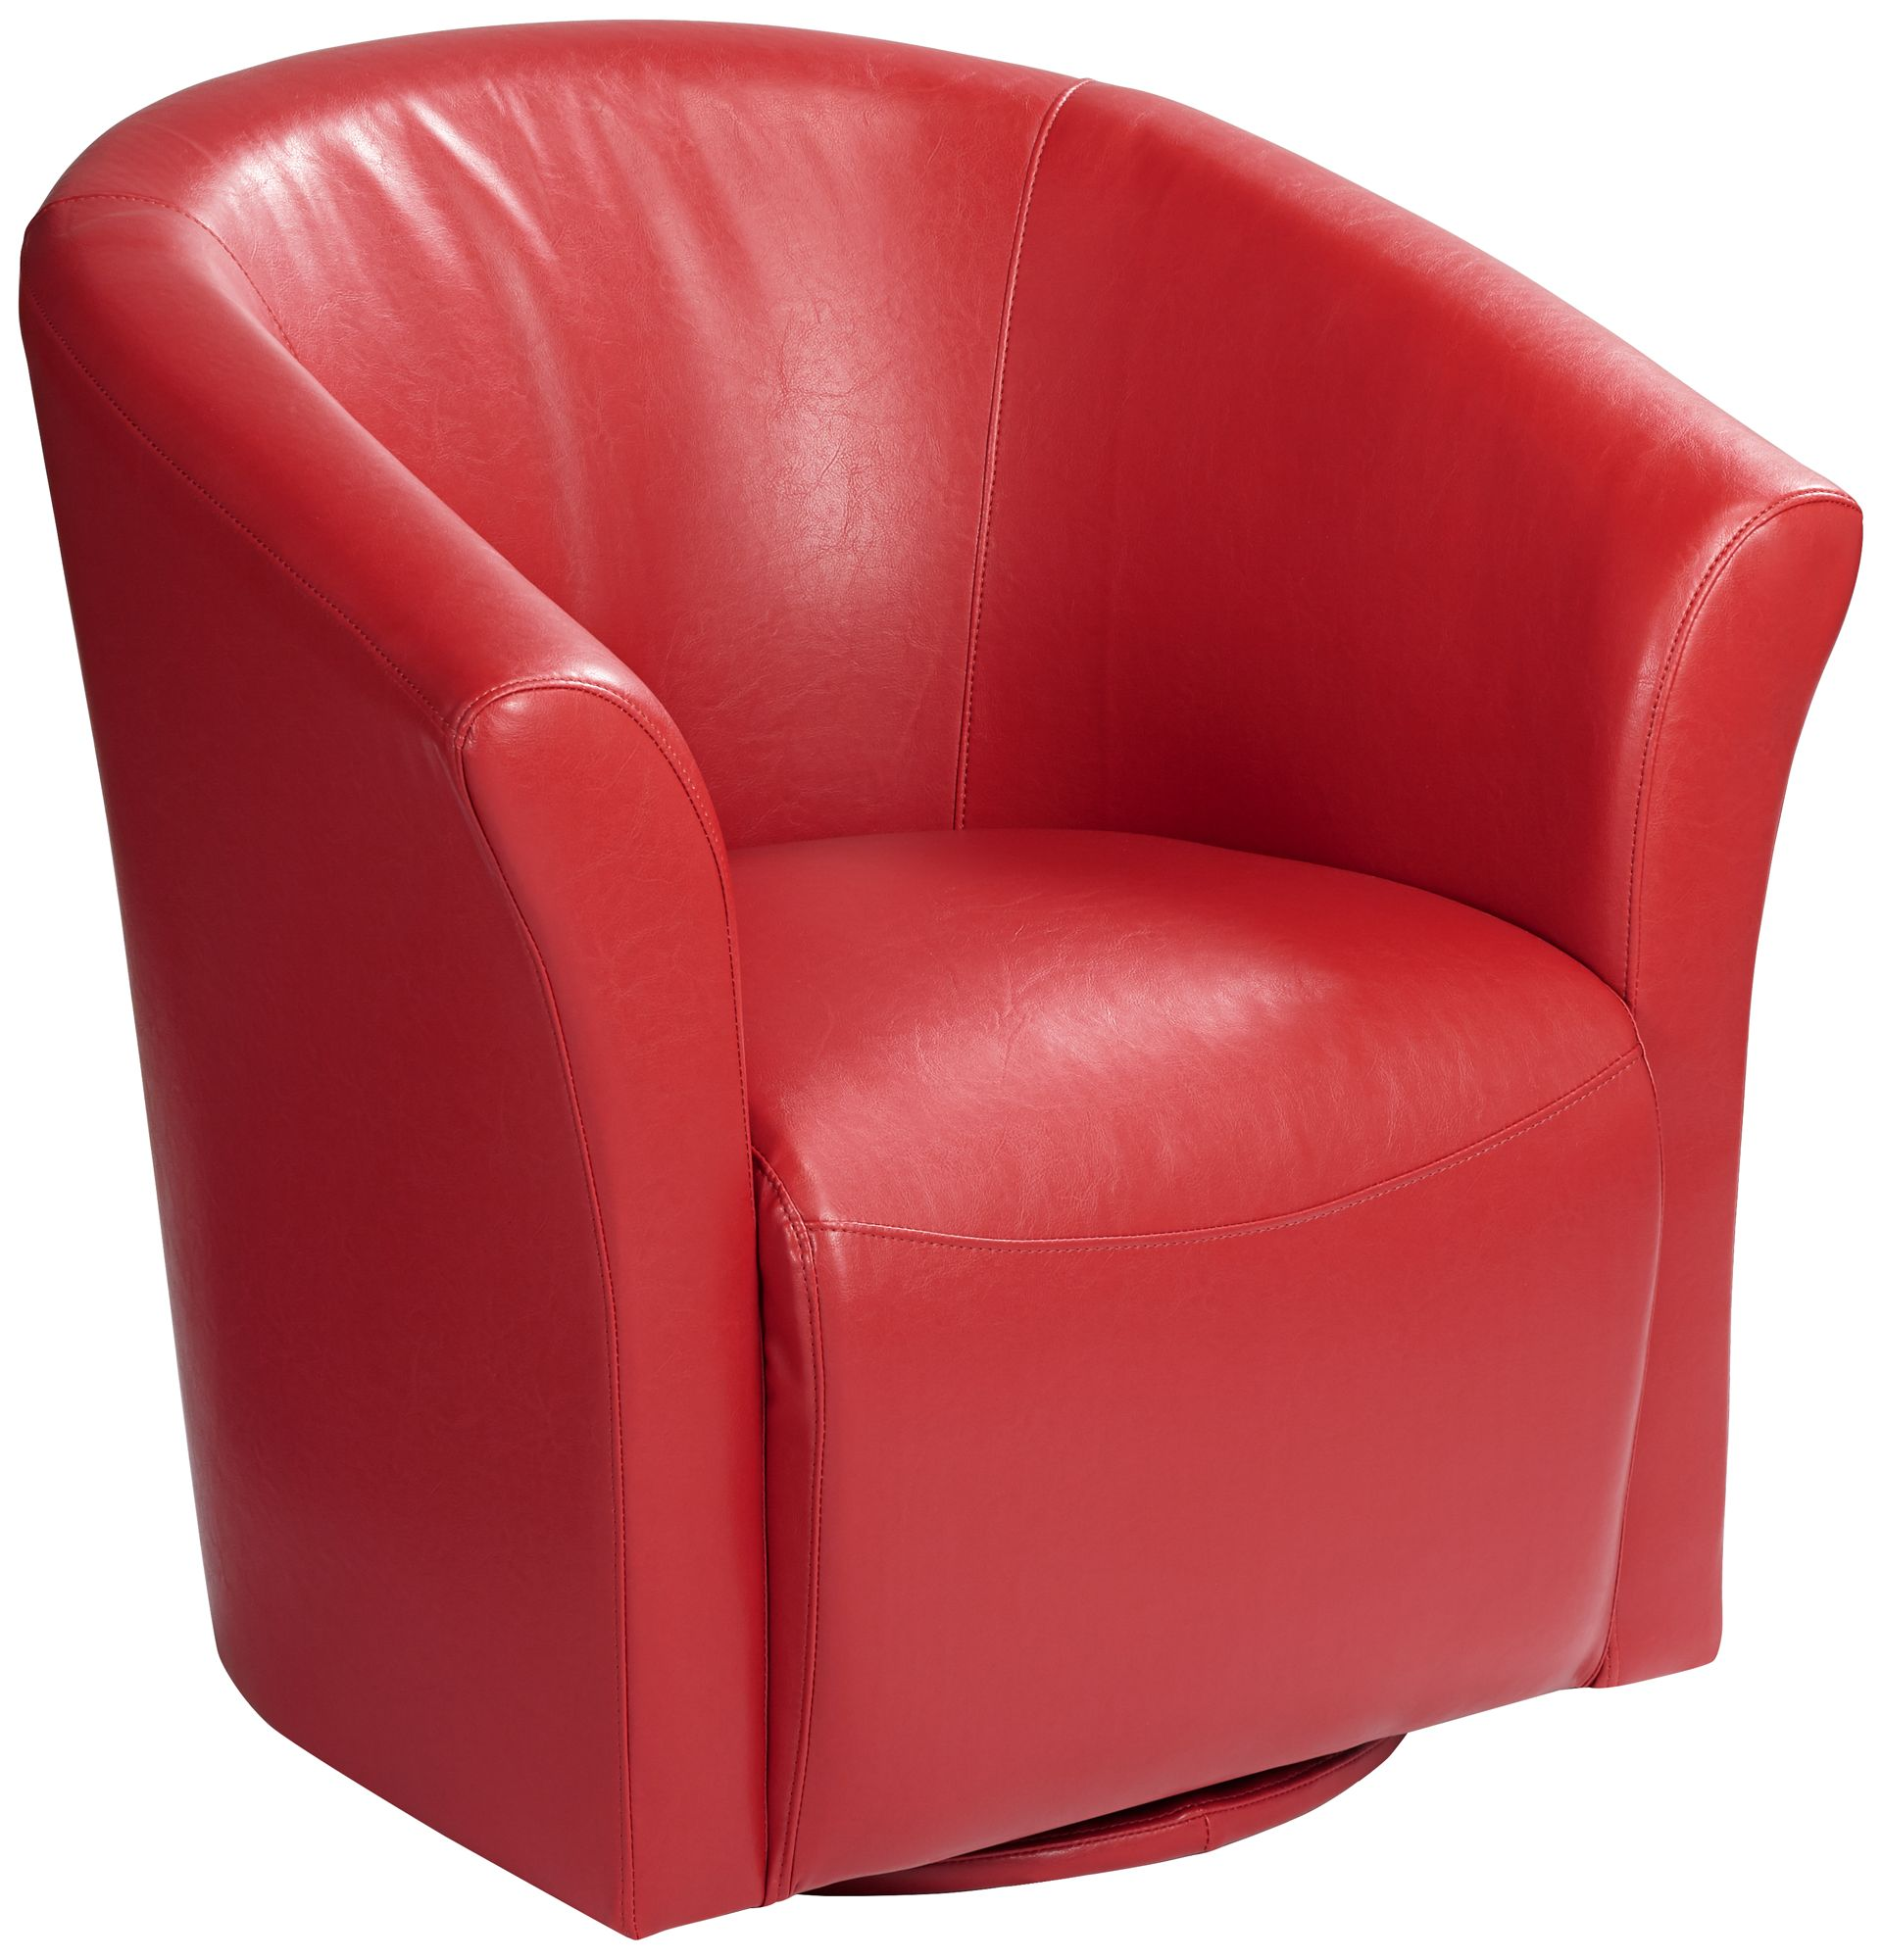 Charmant Elements Rocket Rivera Red Swivel Accent Chair